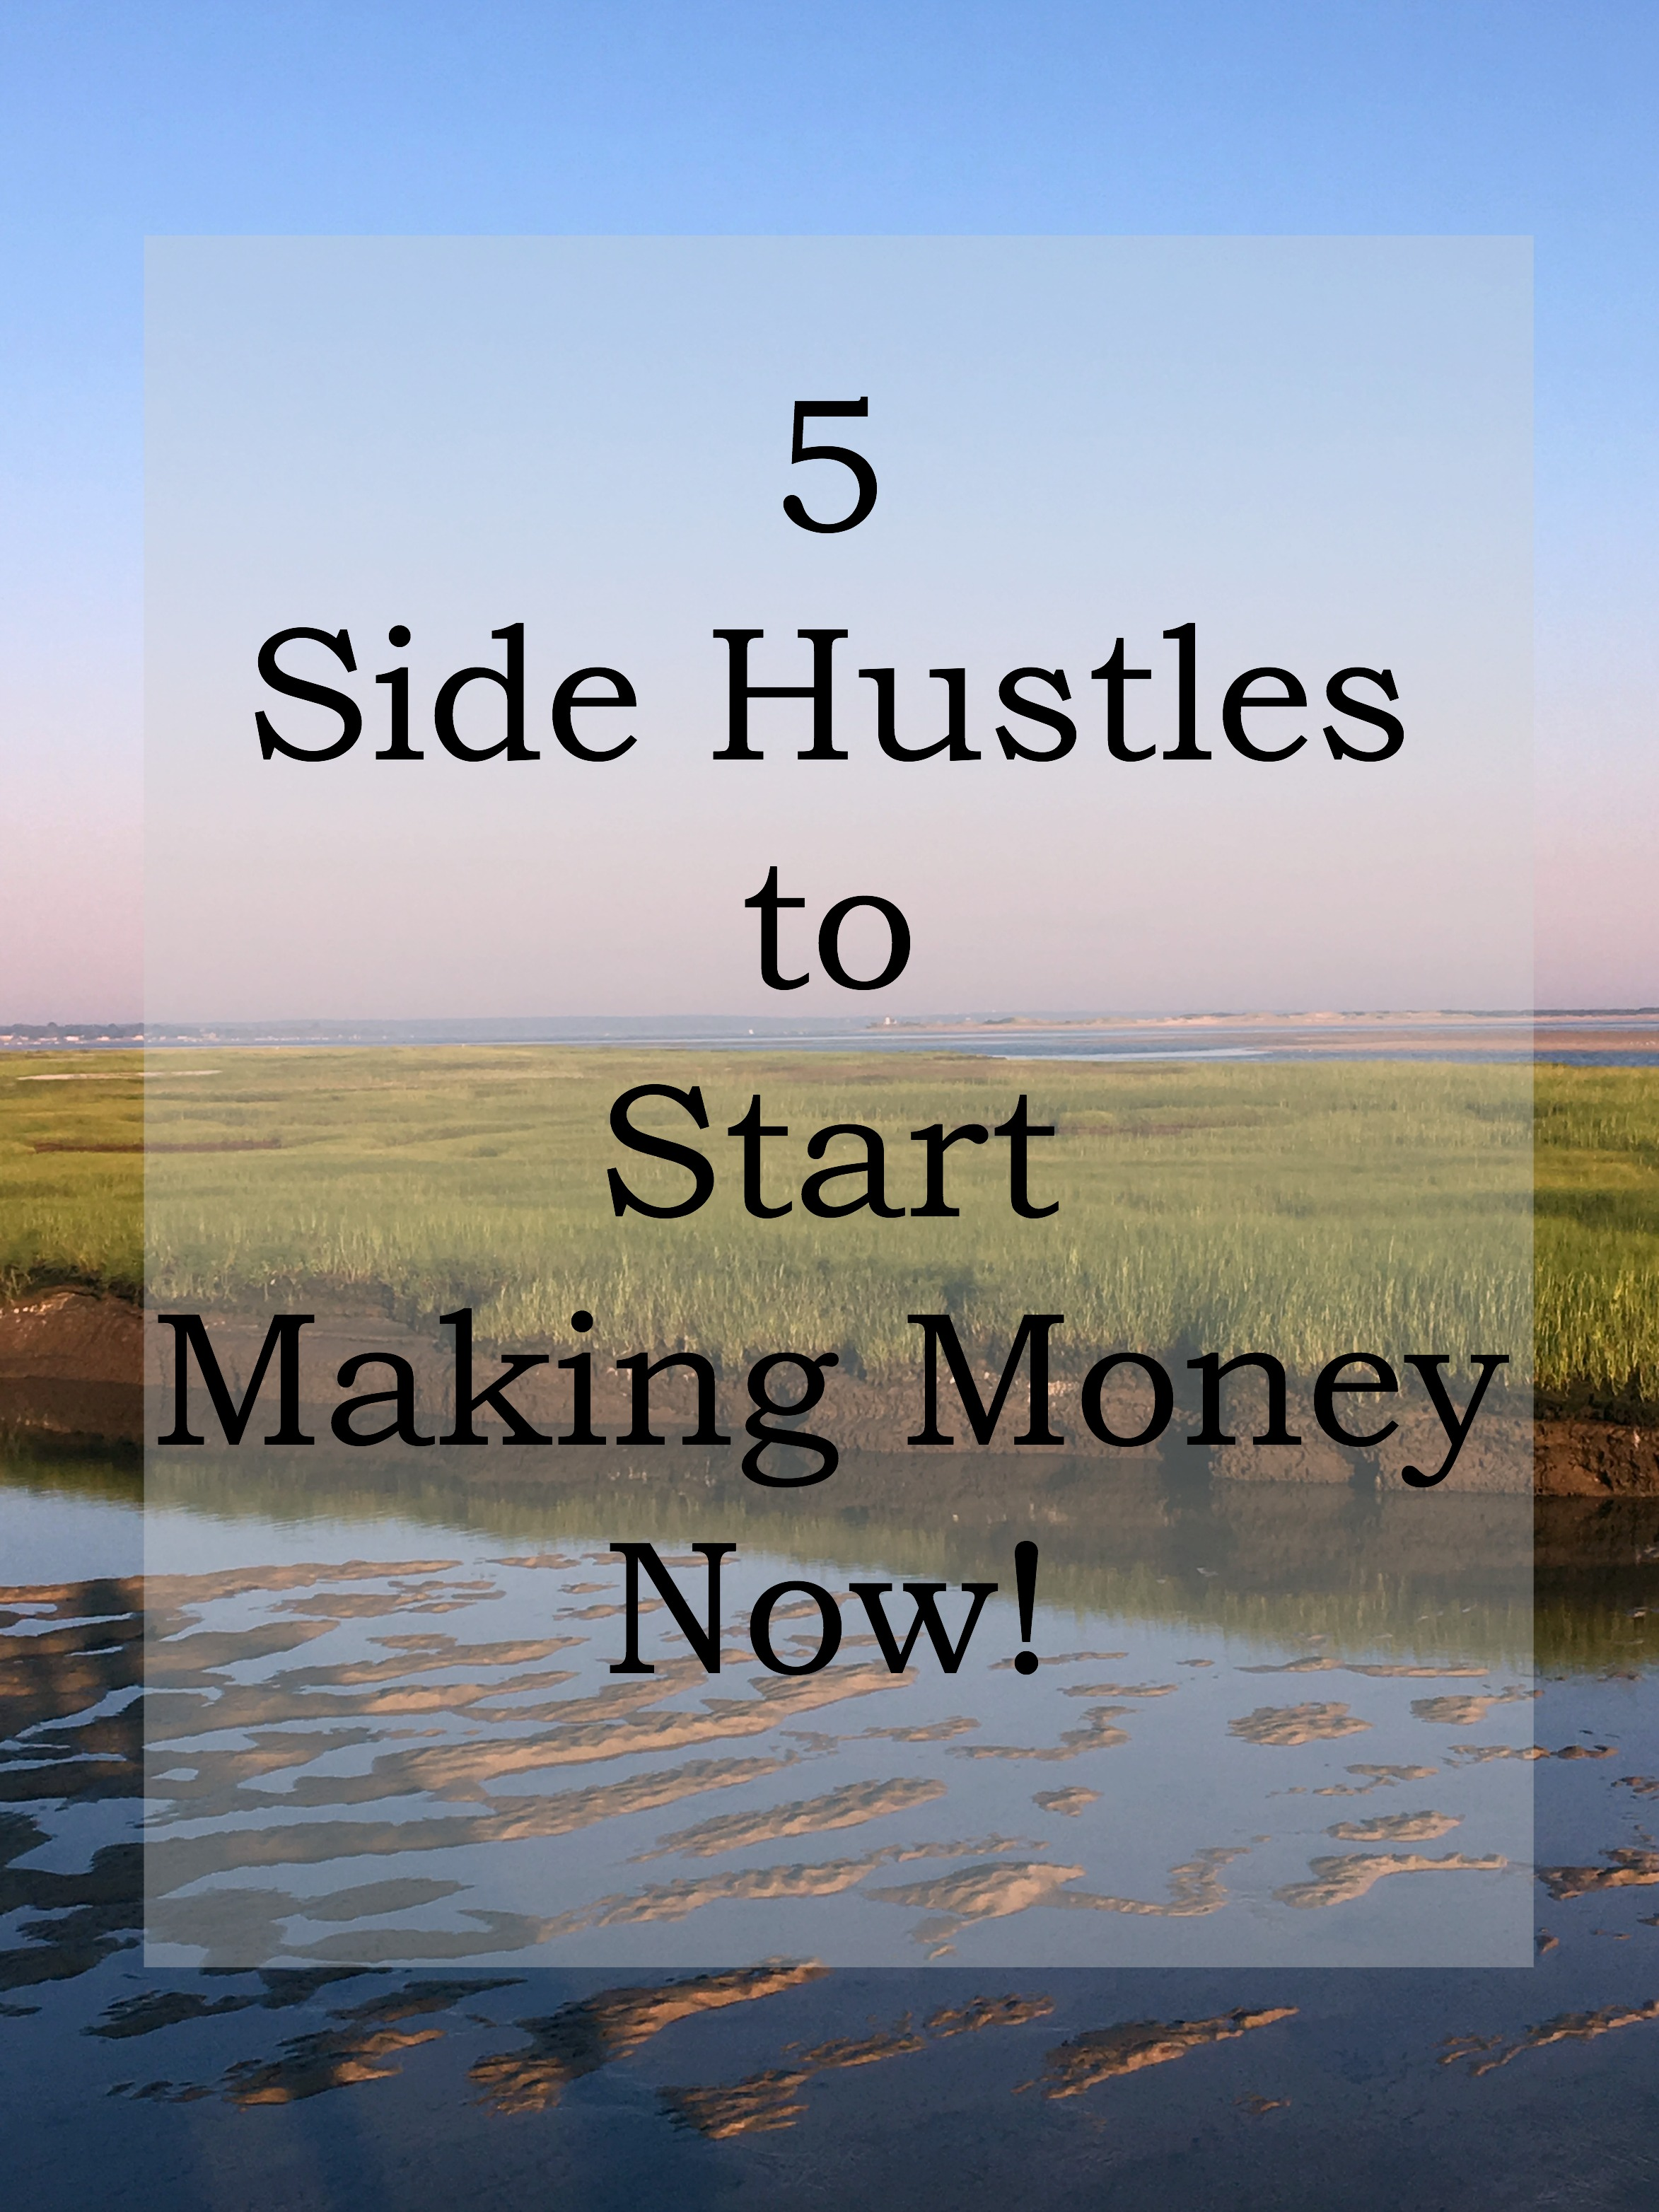 Looking for a way to increase your family's income? Check out these great side hustles to make money now!